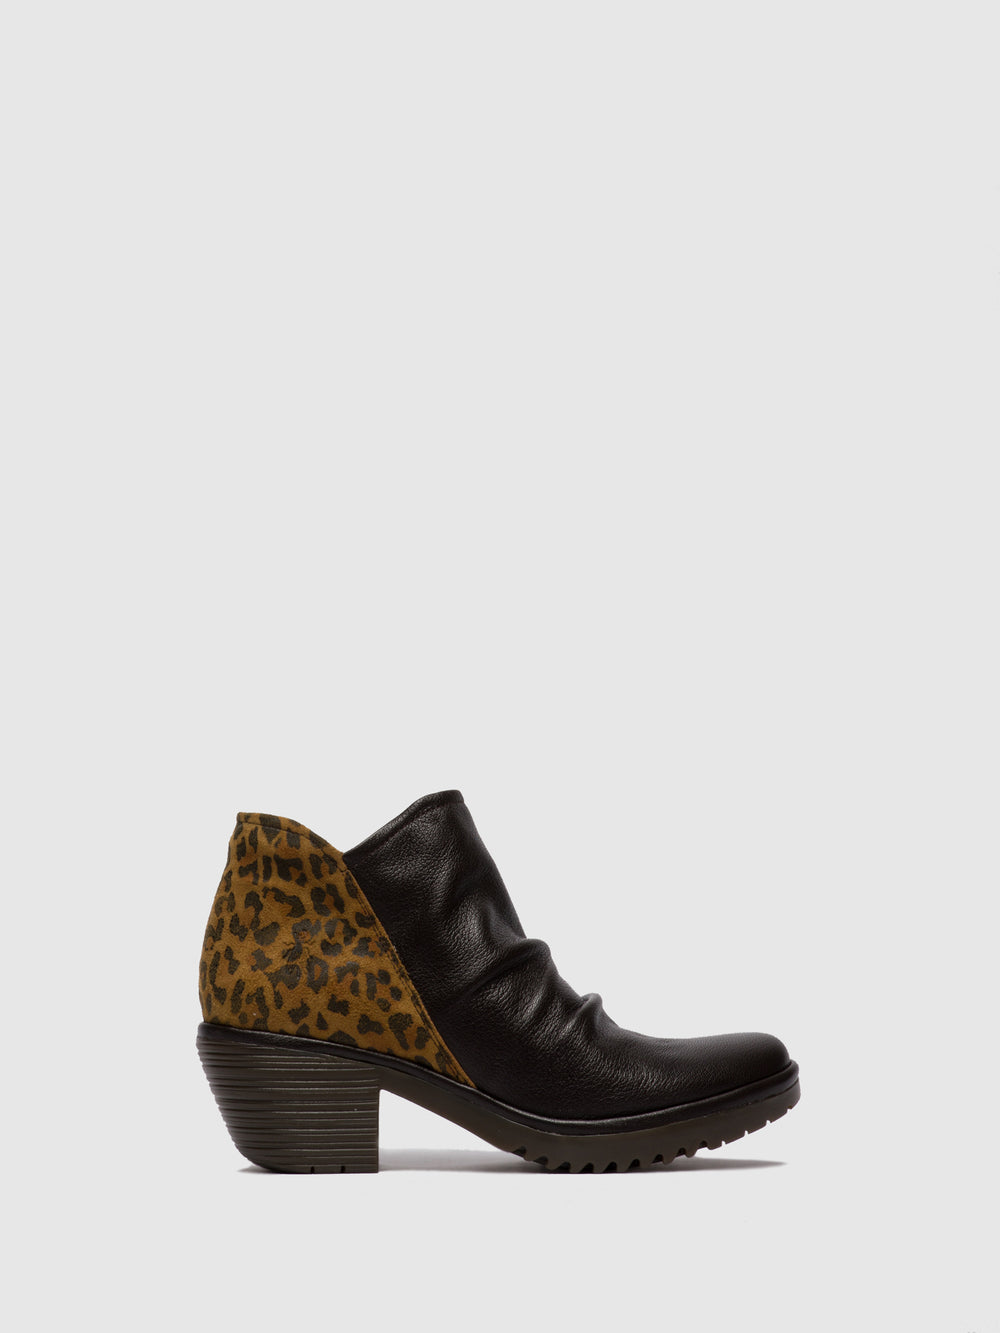 Zip Up Ankle Boots WEZO890FLY MOUSSE/CHEETAH CHOCOLATE/TAN